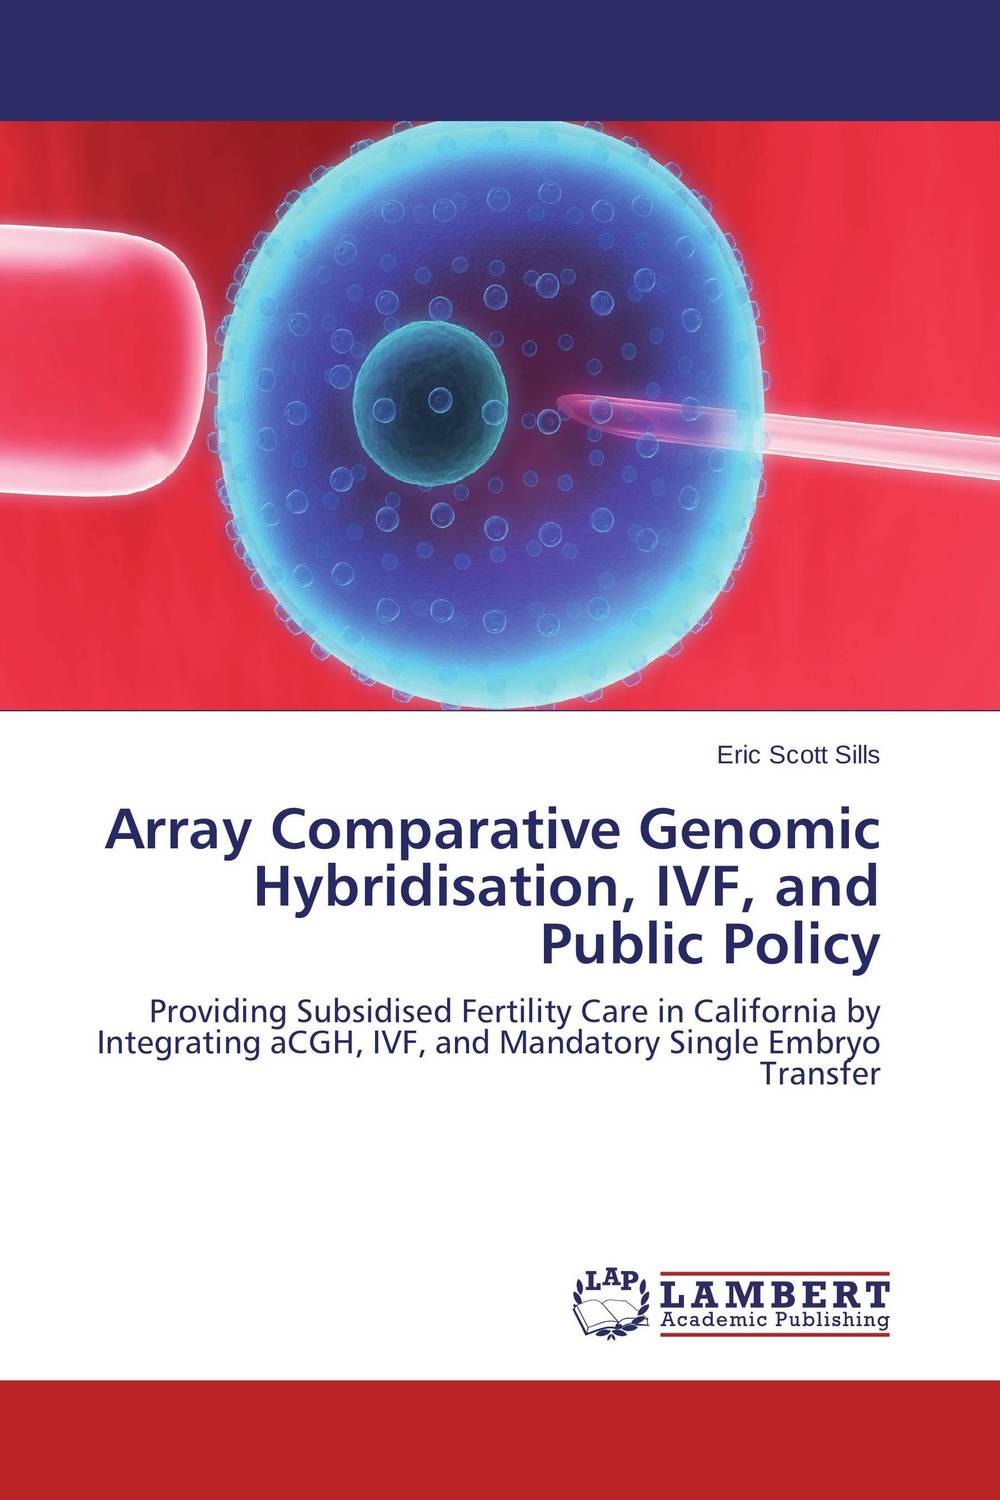 Array Comparative Genomic Hybridisation, IVF, and Public Policy